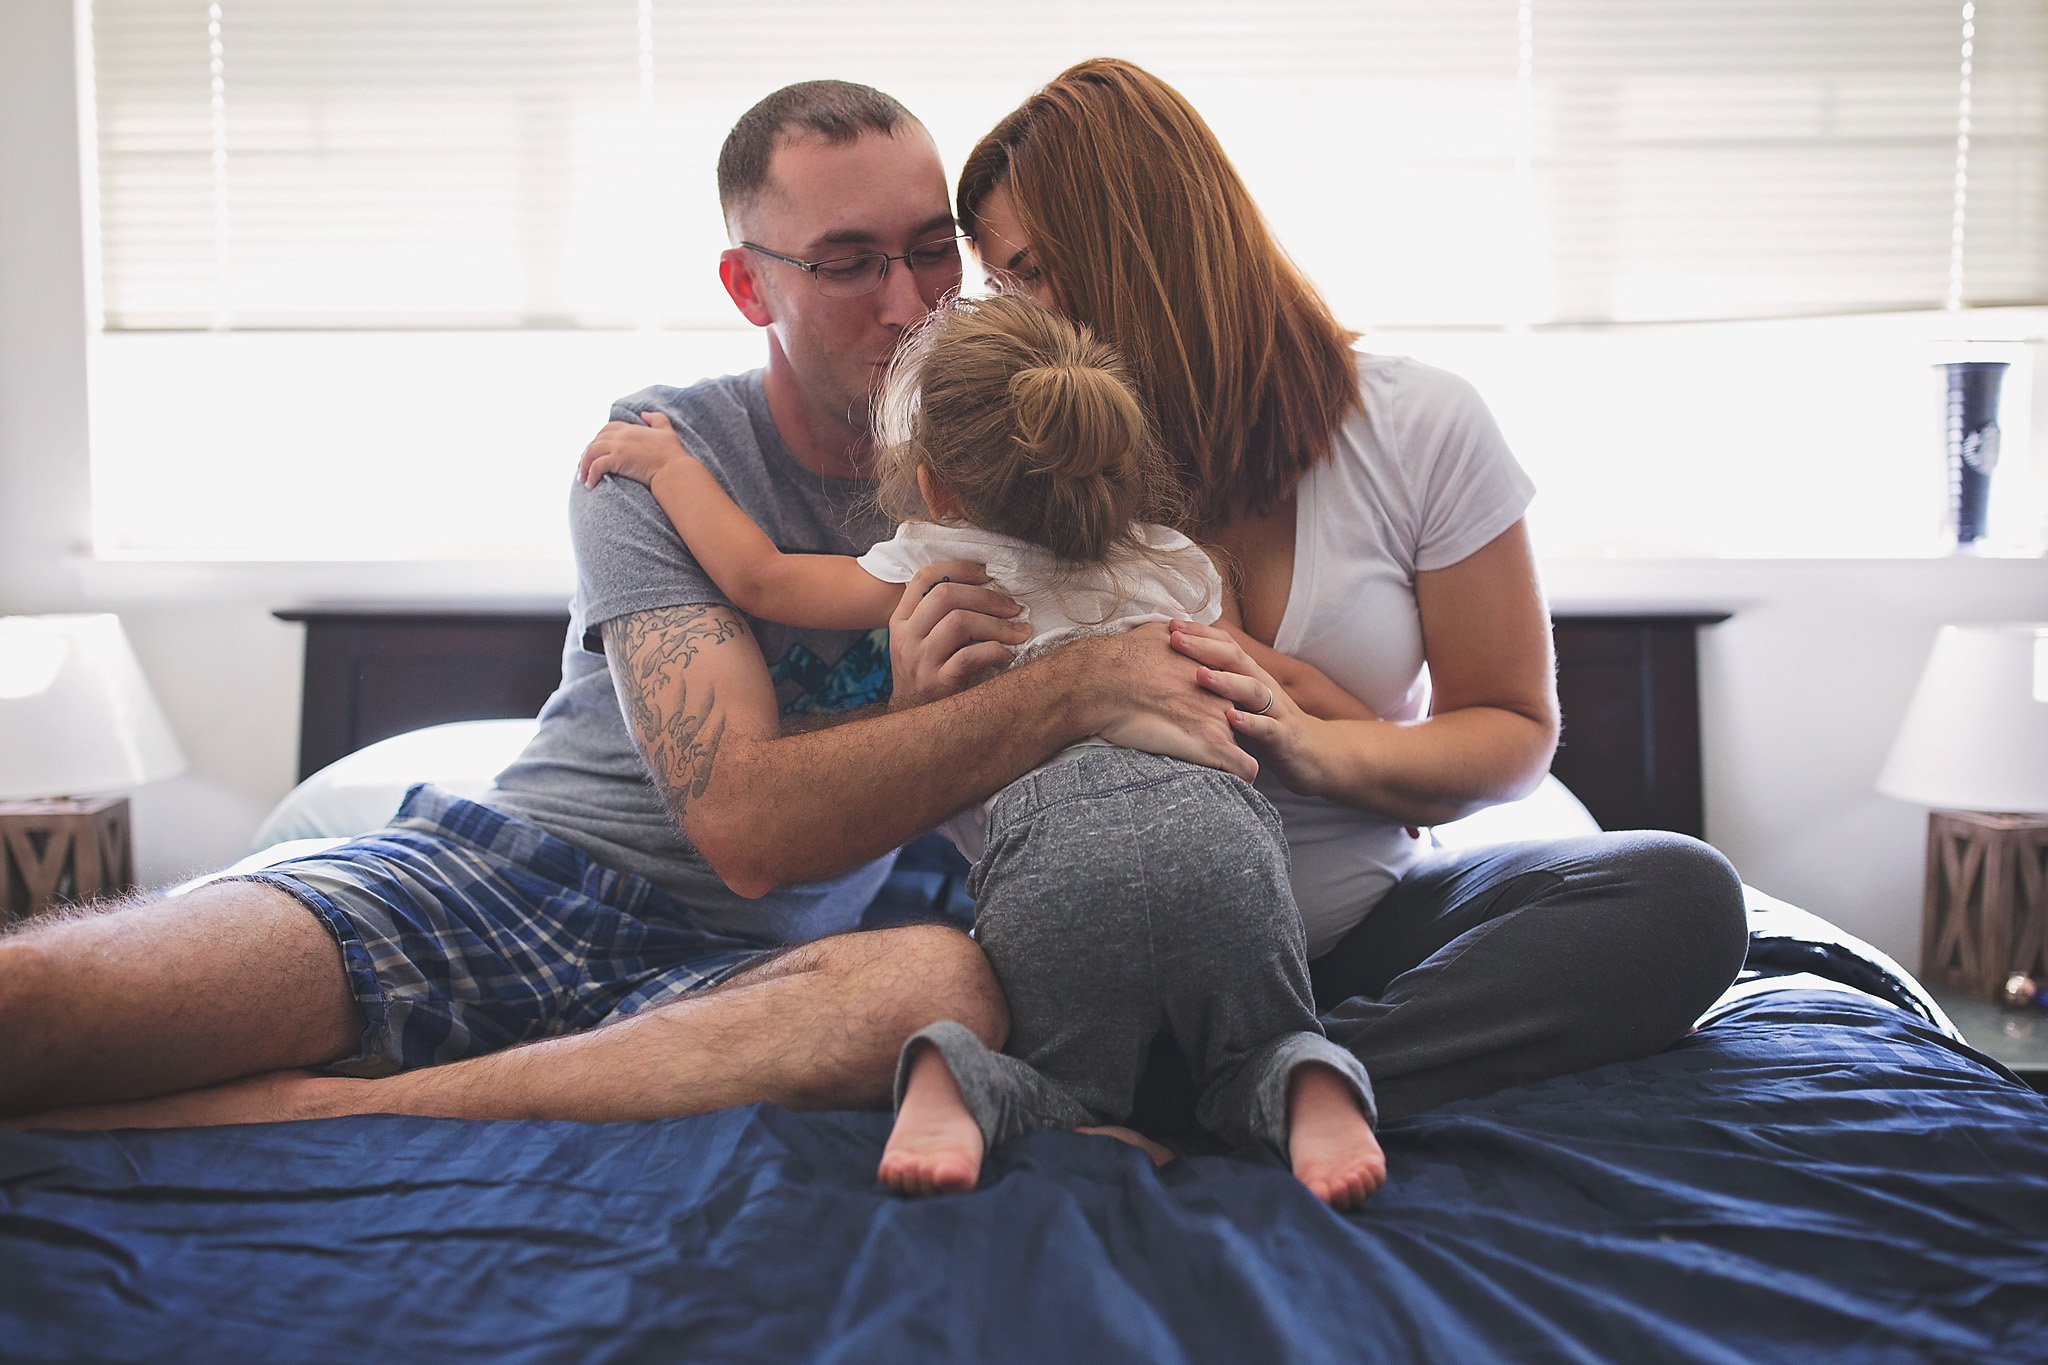 Family of 3 hugging in bed durning in home maternity session.